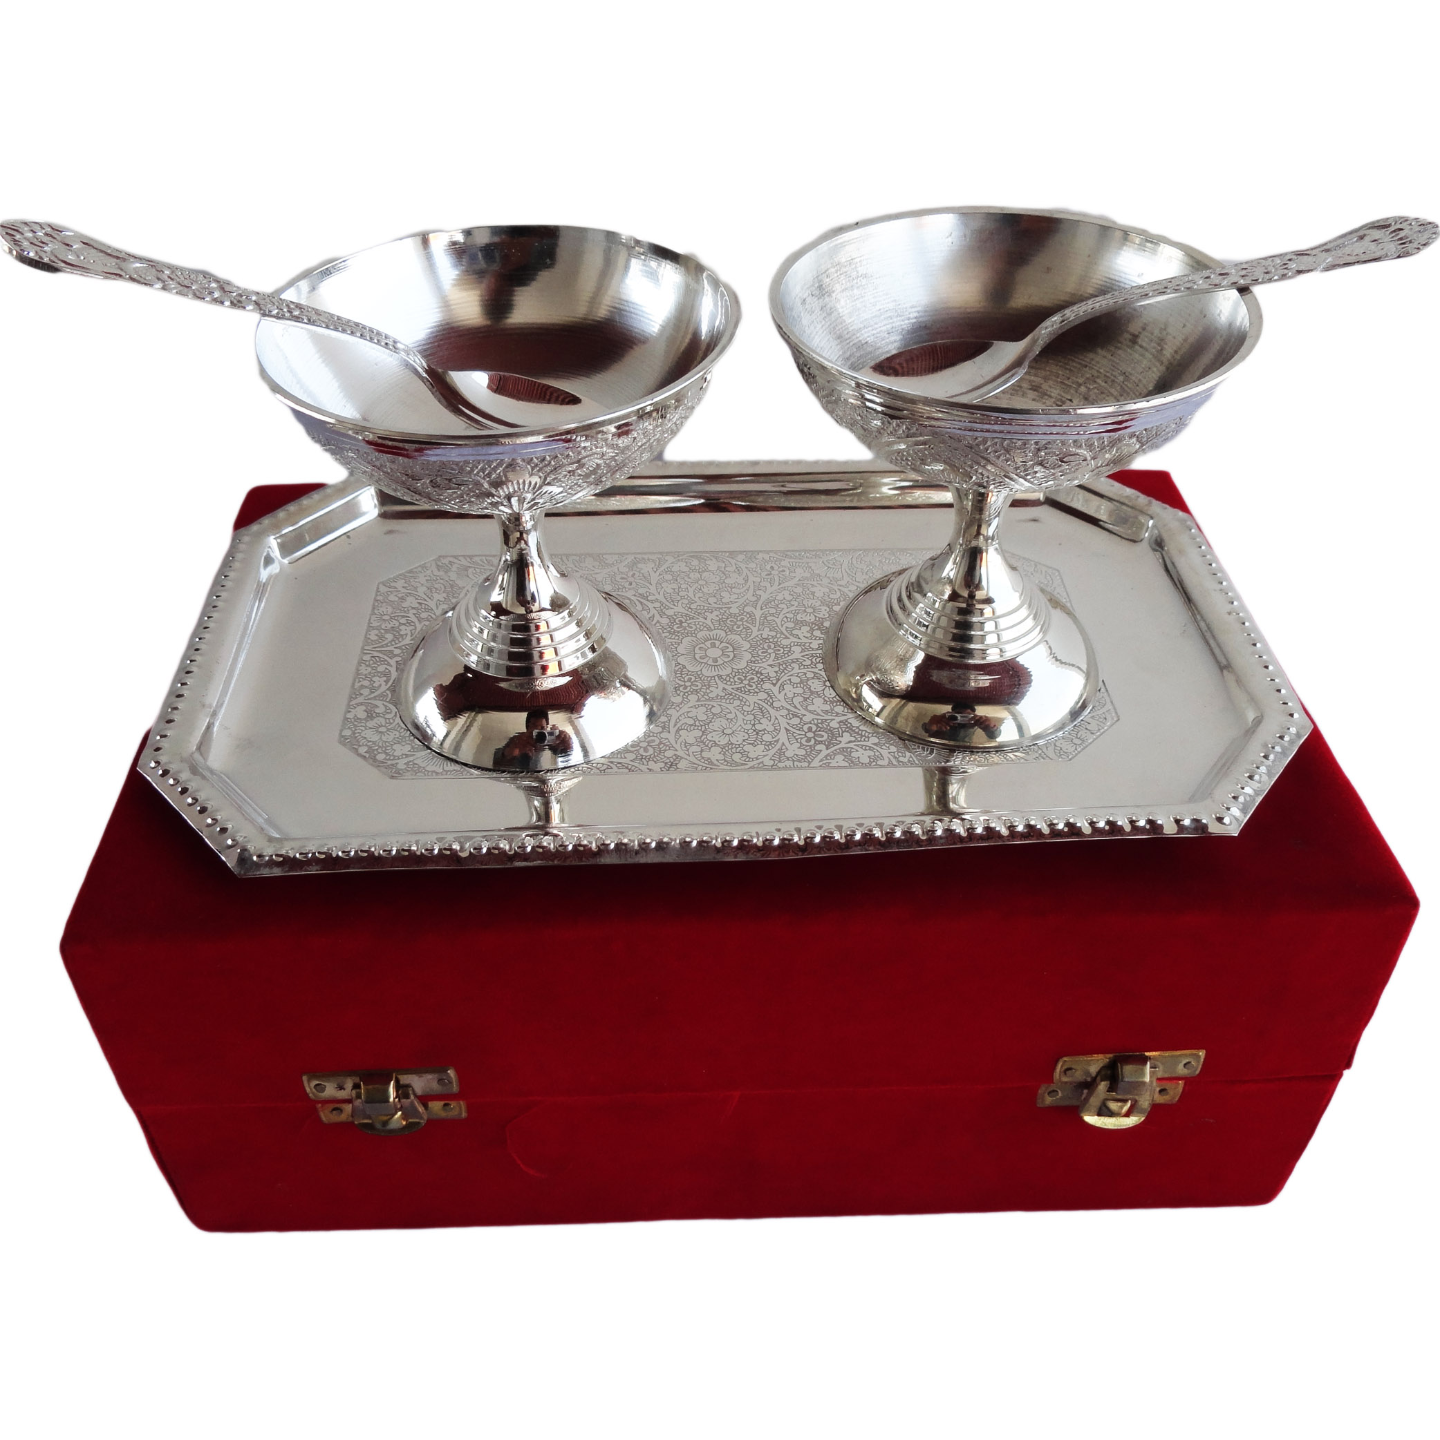 Brass Ice Cream Bowl Set In Silver Pating Packed In Red Velvet Box - 3.5*3.5*3.5 Inch  (B091)